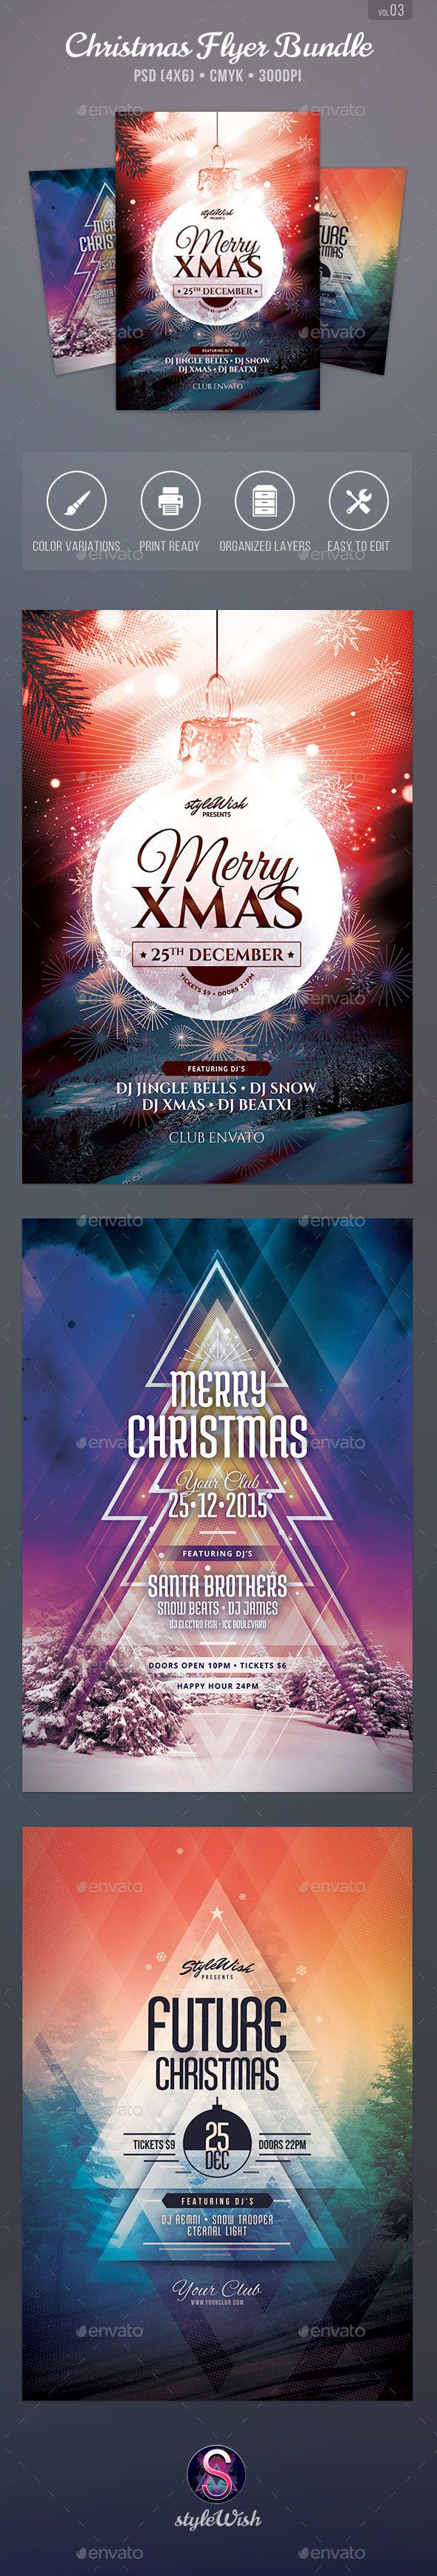 Christmas Flyer Bundle Template PSD #design Download: http://graphicriver.net/item/christmas-flyer-bundle-vol03/13932067?ref=ksioks